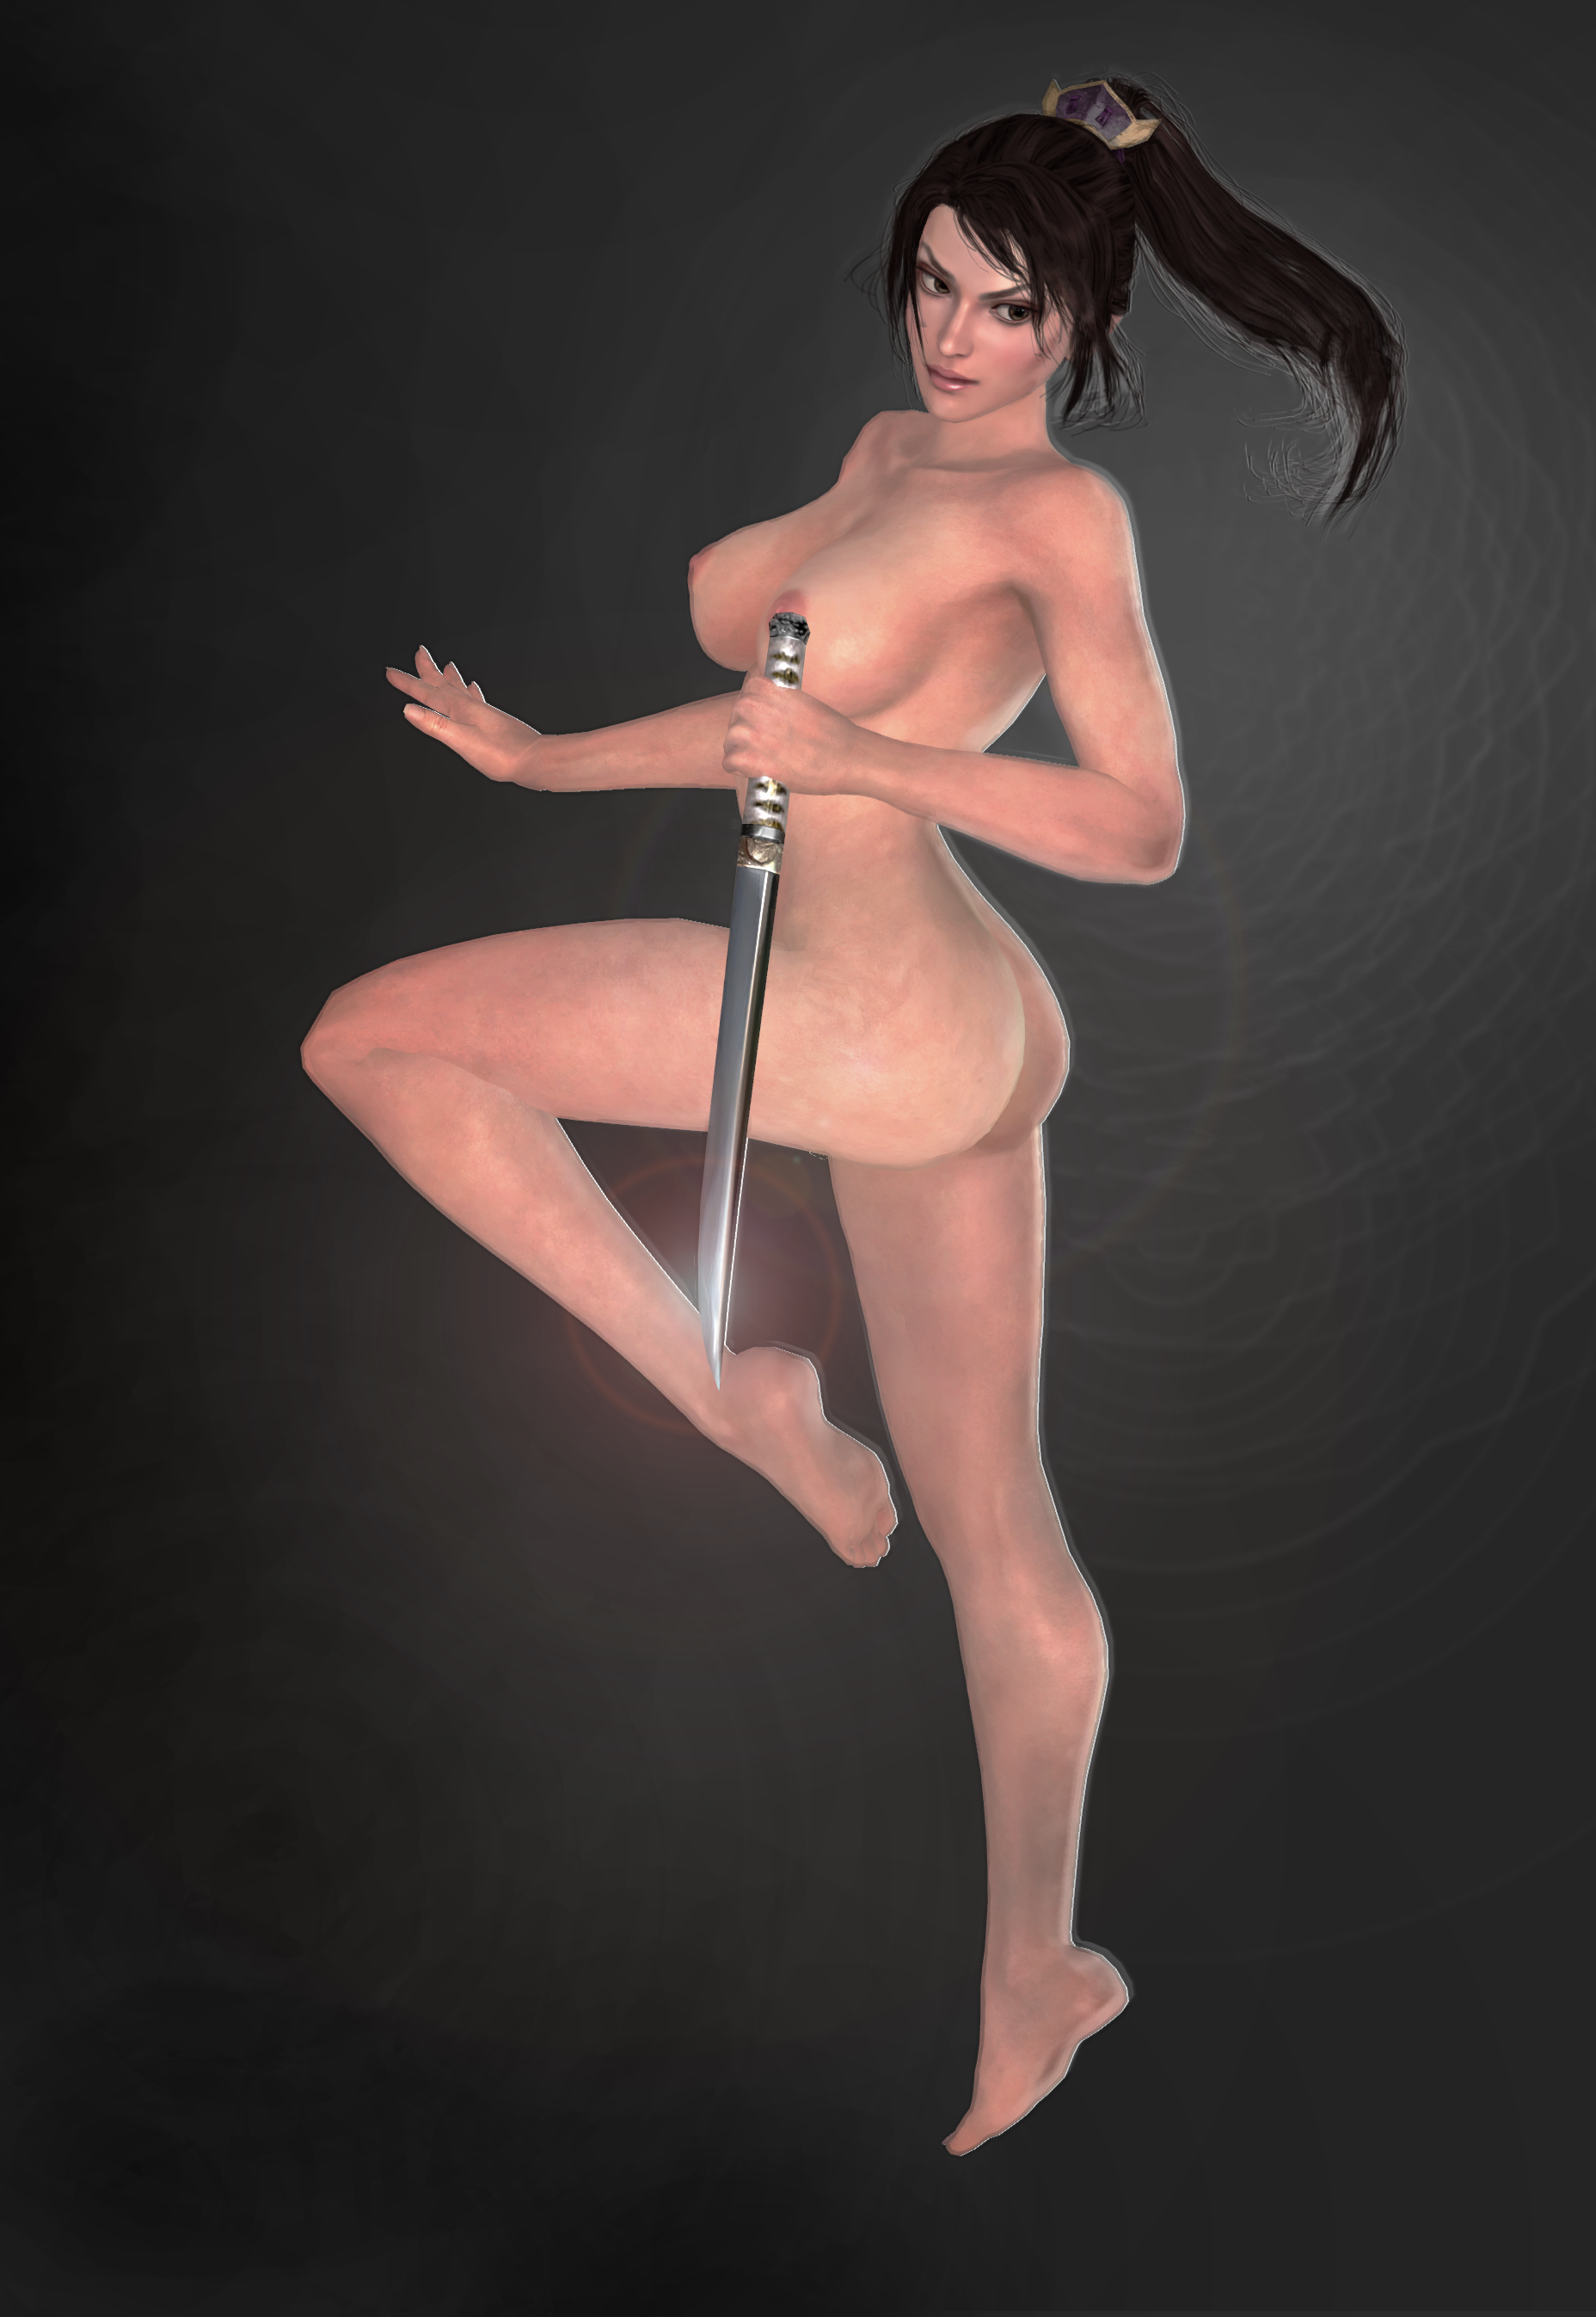 Not soul calibur babe nude pity